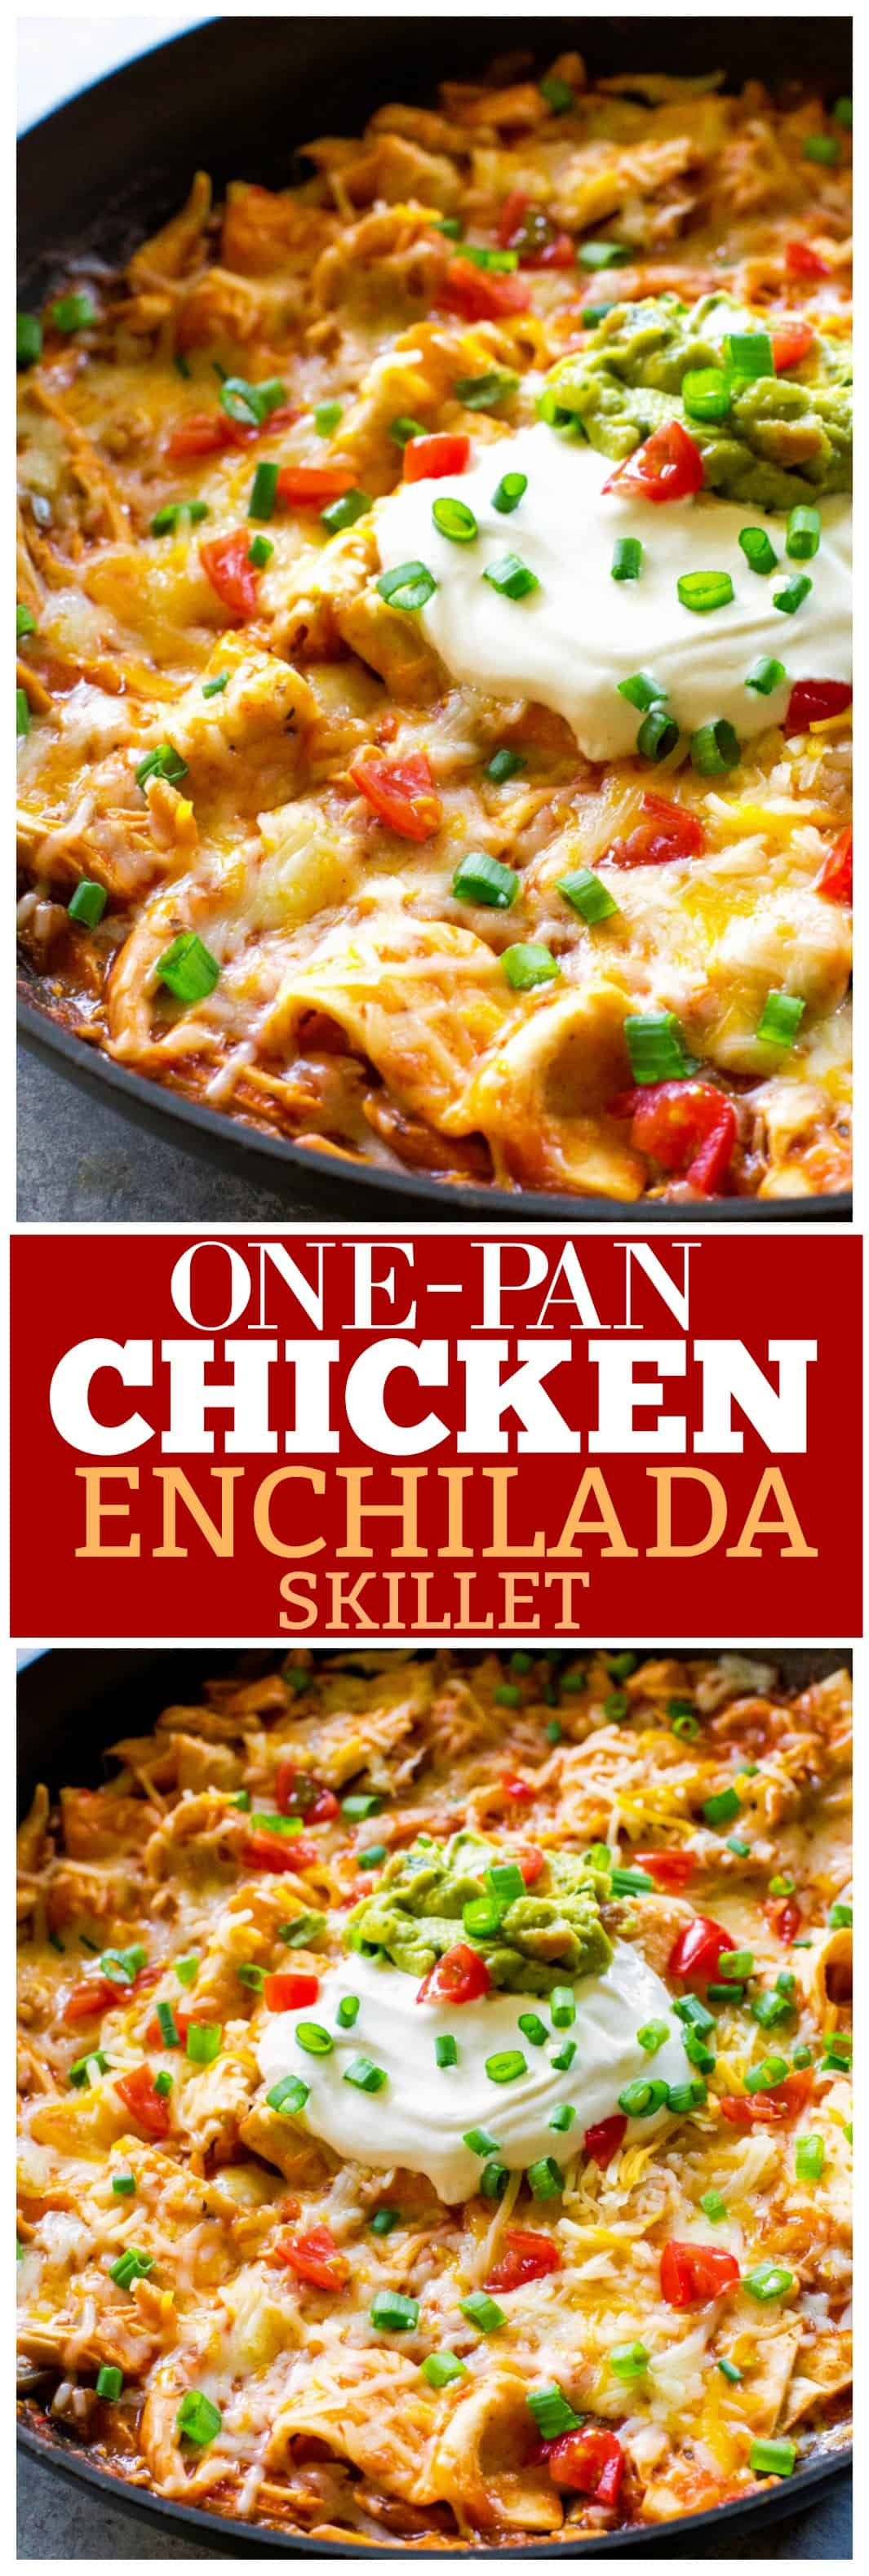 One Pan Chicken Enchilada Skillet enchilada sauce, chicken, tortillas, and salsa topped with sour cream and green onions